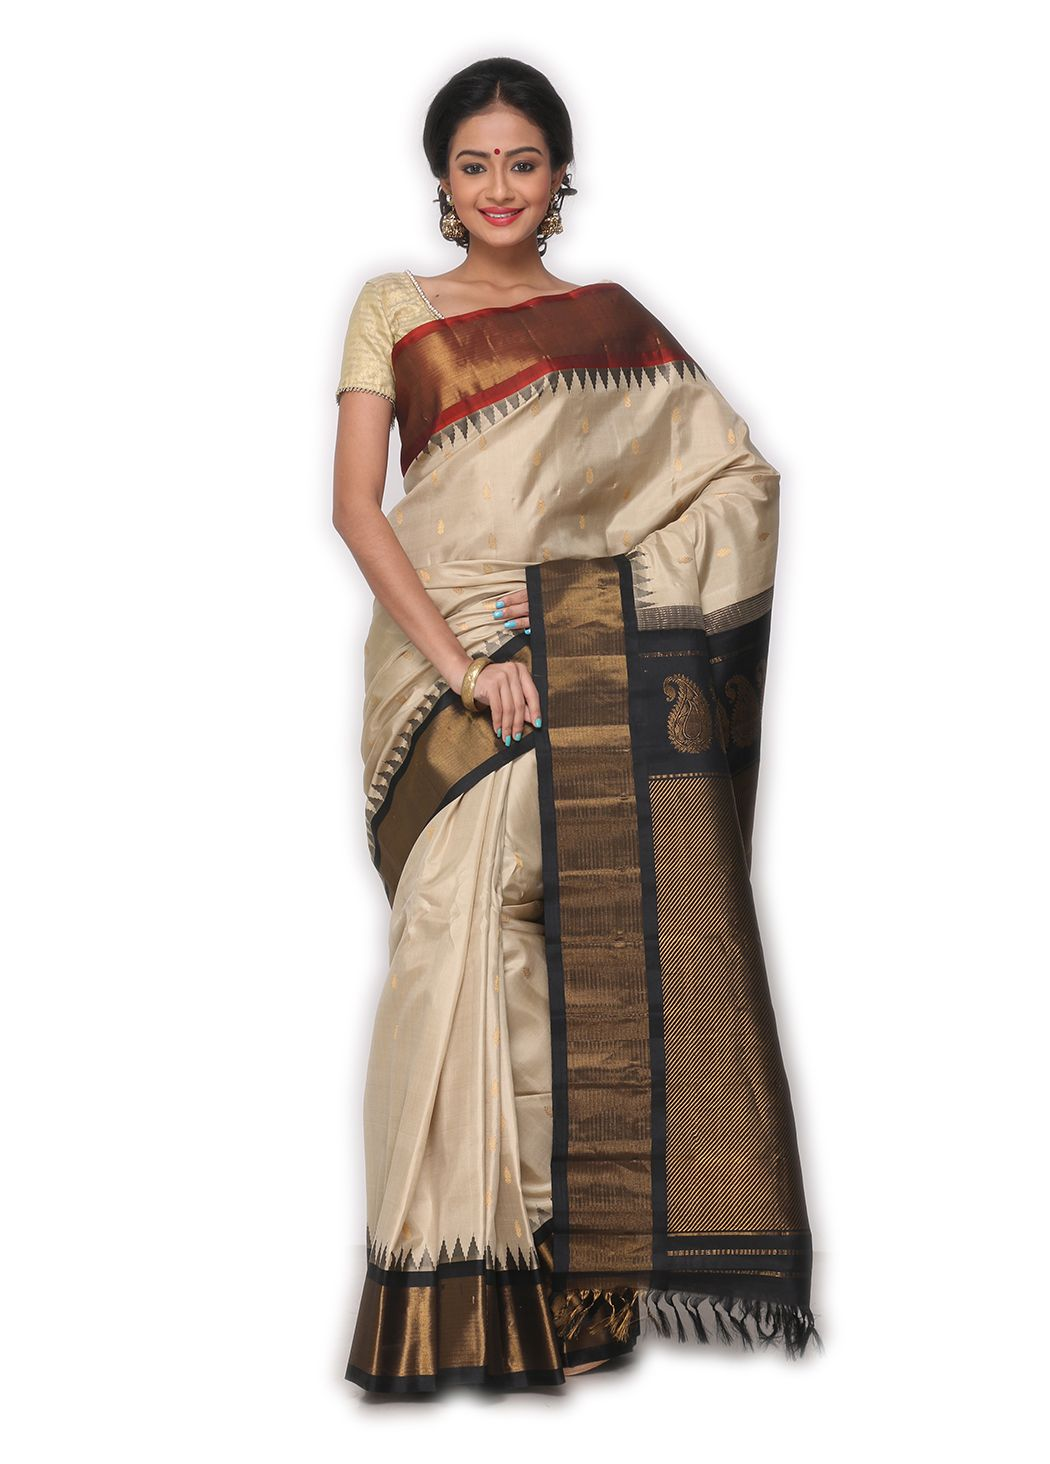 bc37e72a83 BUY SAREE ONLINE - BLACK GADWAL SAREE WITH BLOUSE | INDIAN SILK HOUSE  AGENCIES